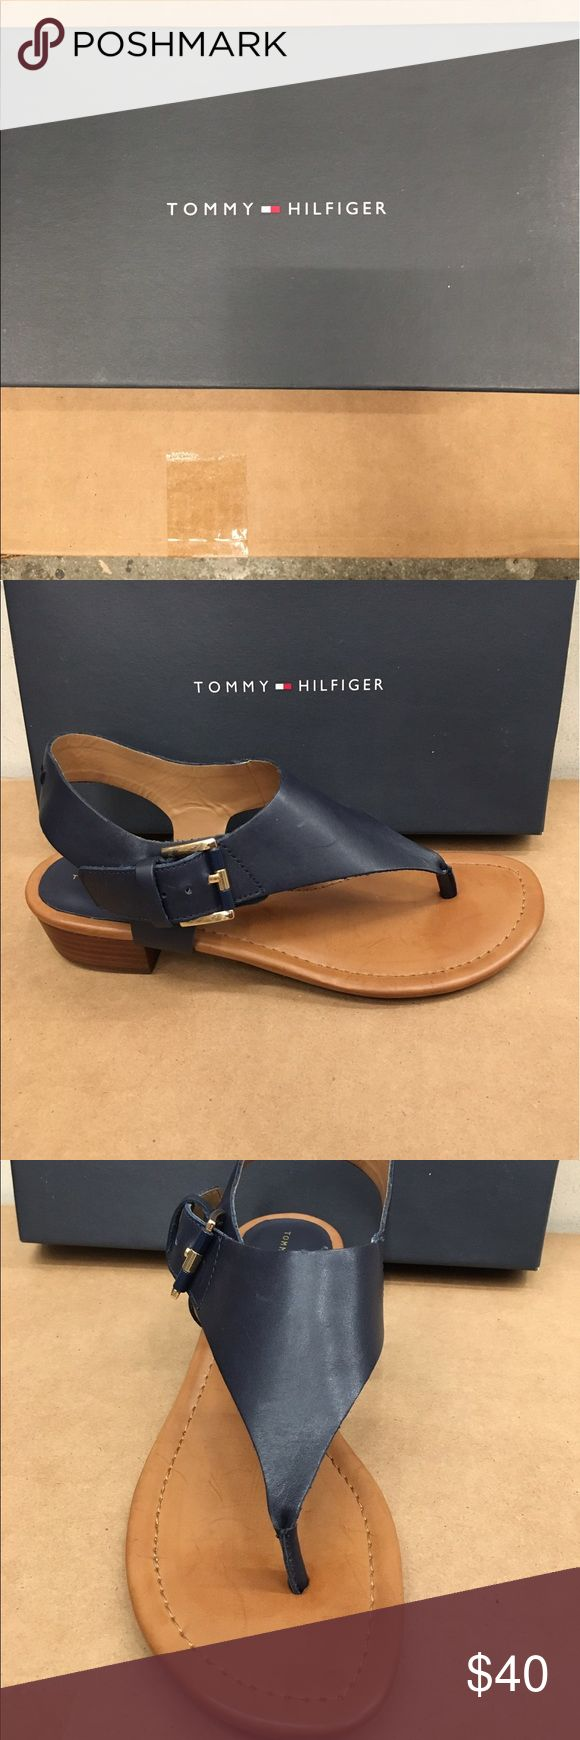 Brand new Tommy Hilfiger sandals w/ 1 inch heel❤ Navy blue leather sandals with a 1 inch heel! Never worn. Tommy Hilfiger Shoes Sandals